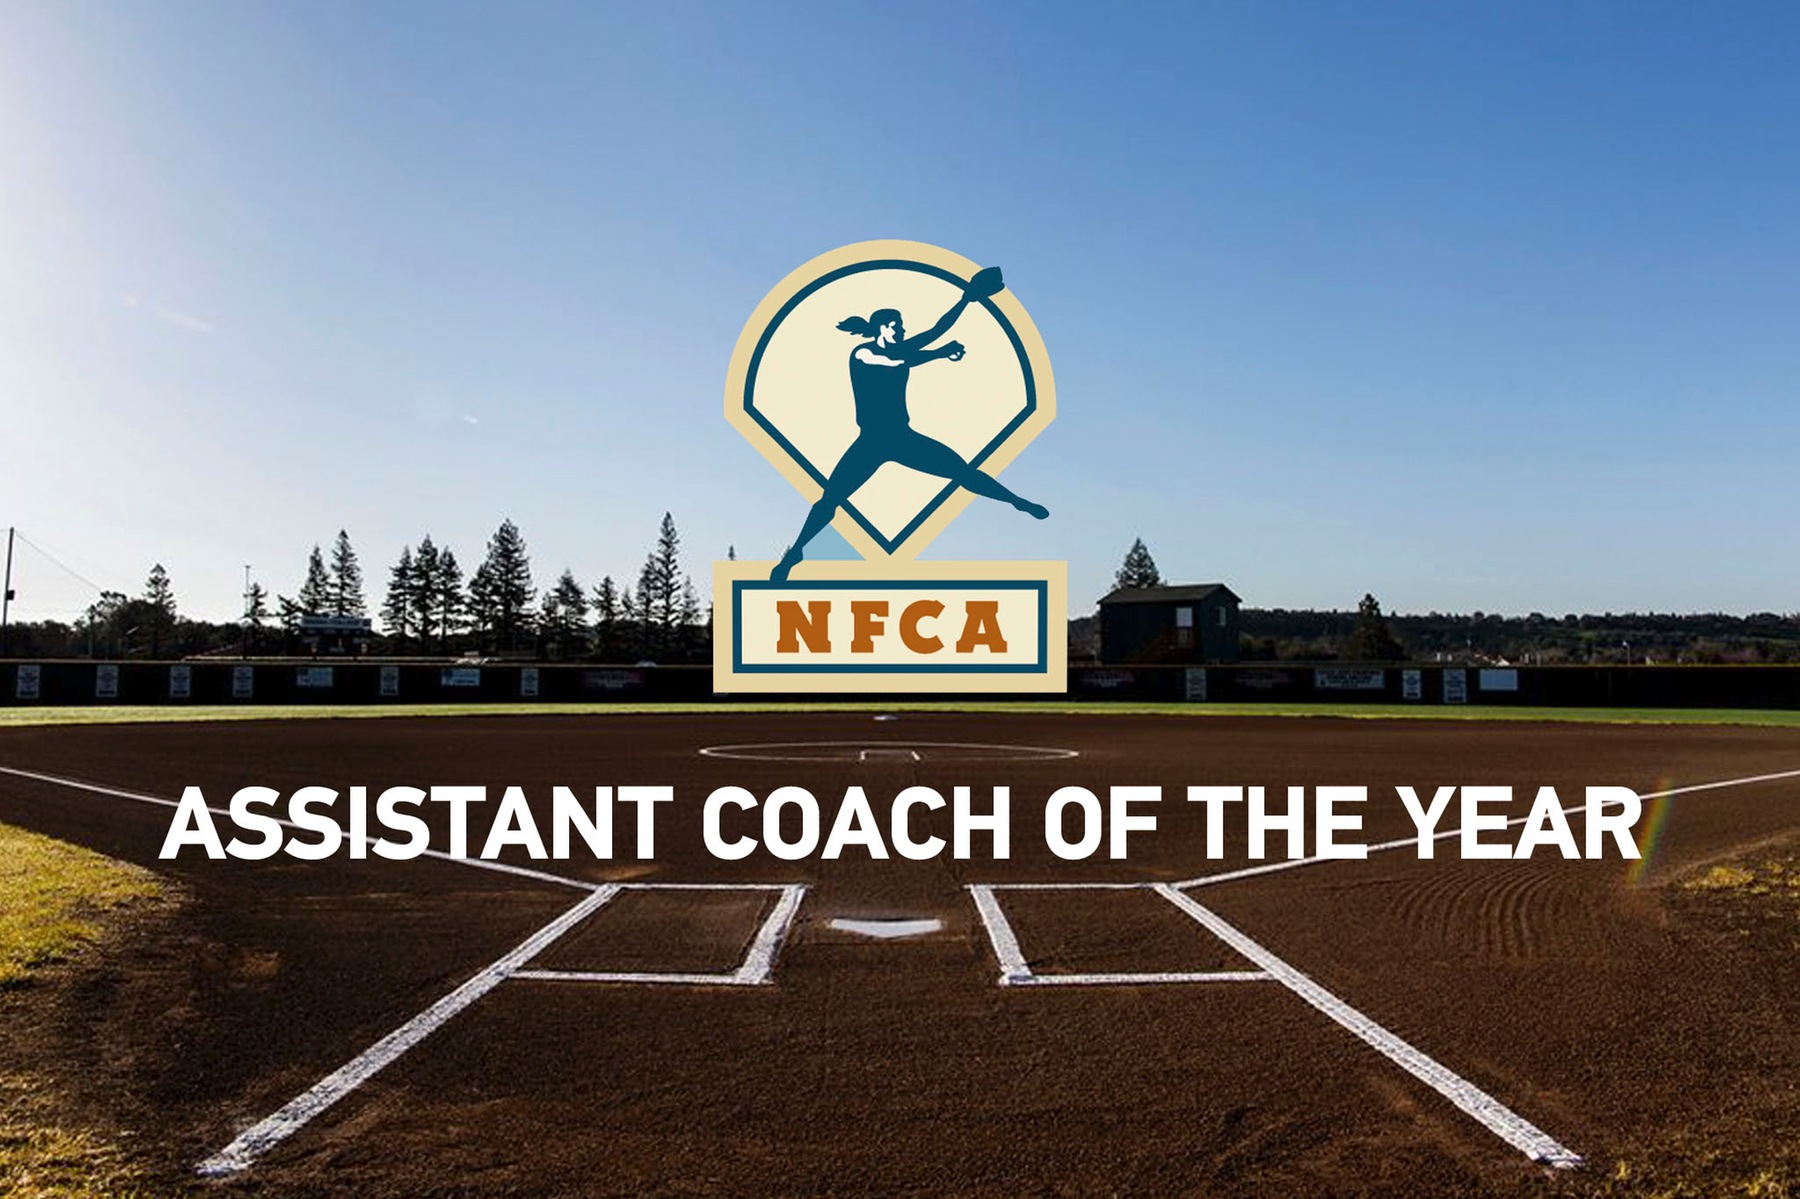 Brett Magorian, NFCA Assistant Coach of the Year